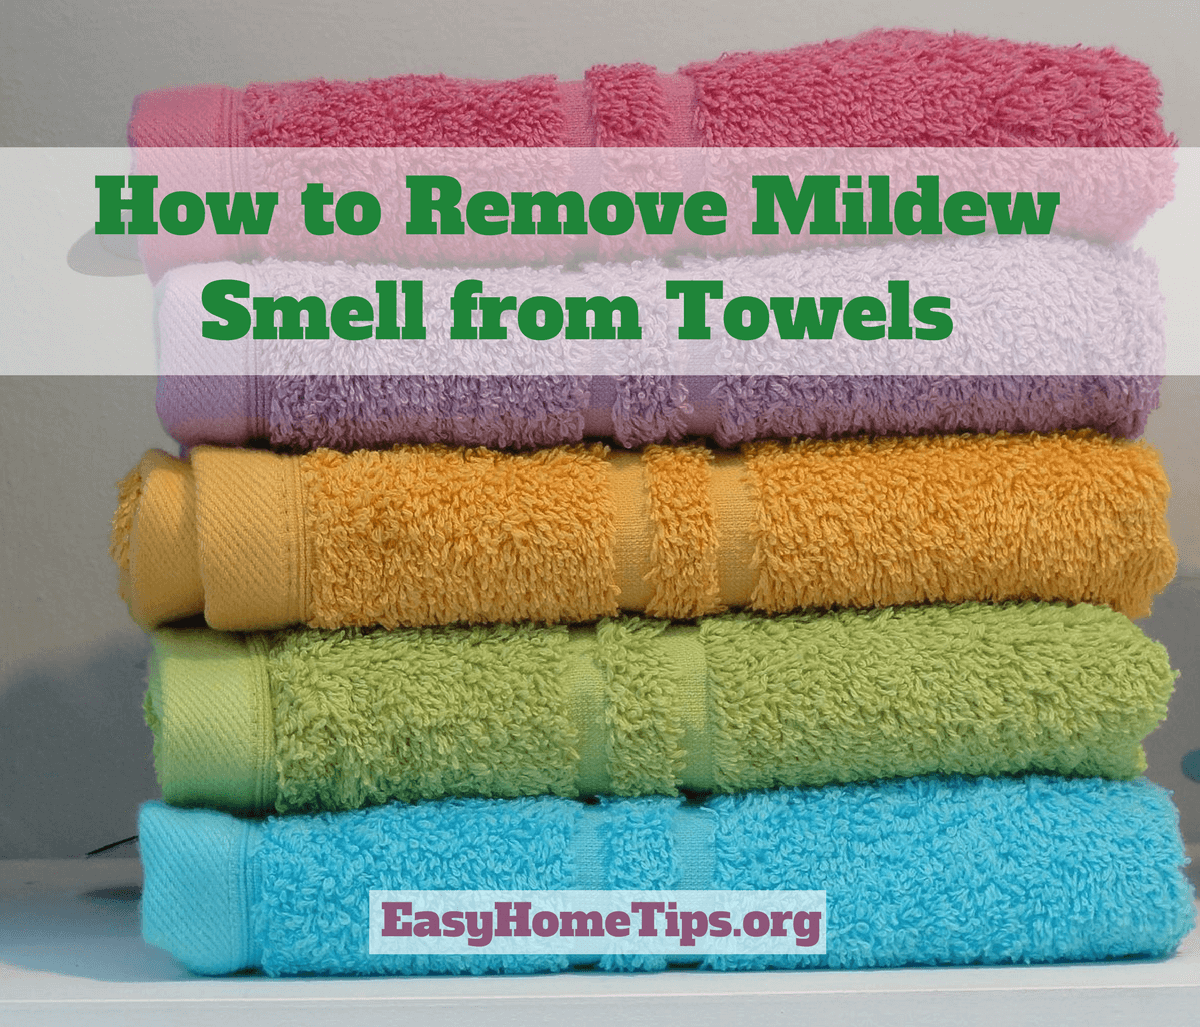 How to Remove Mildew Smell from Towels